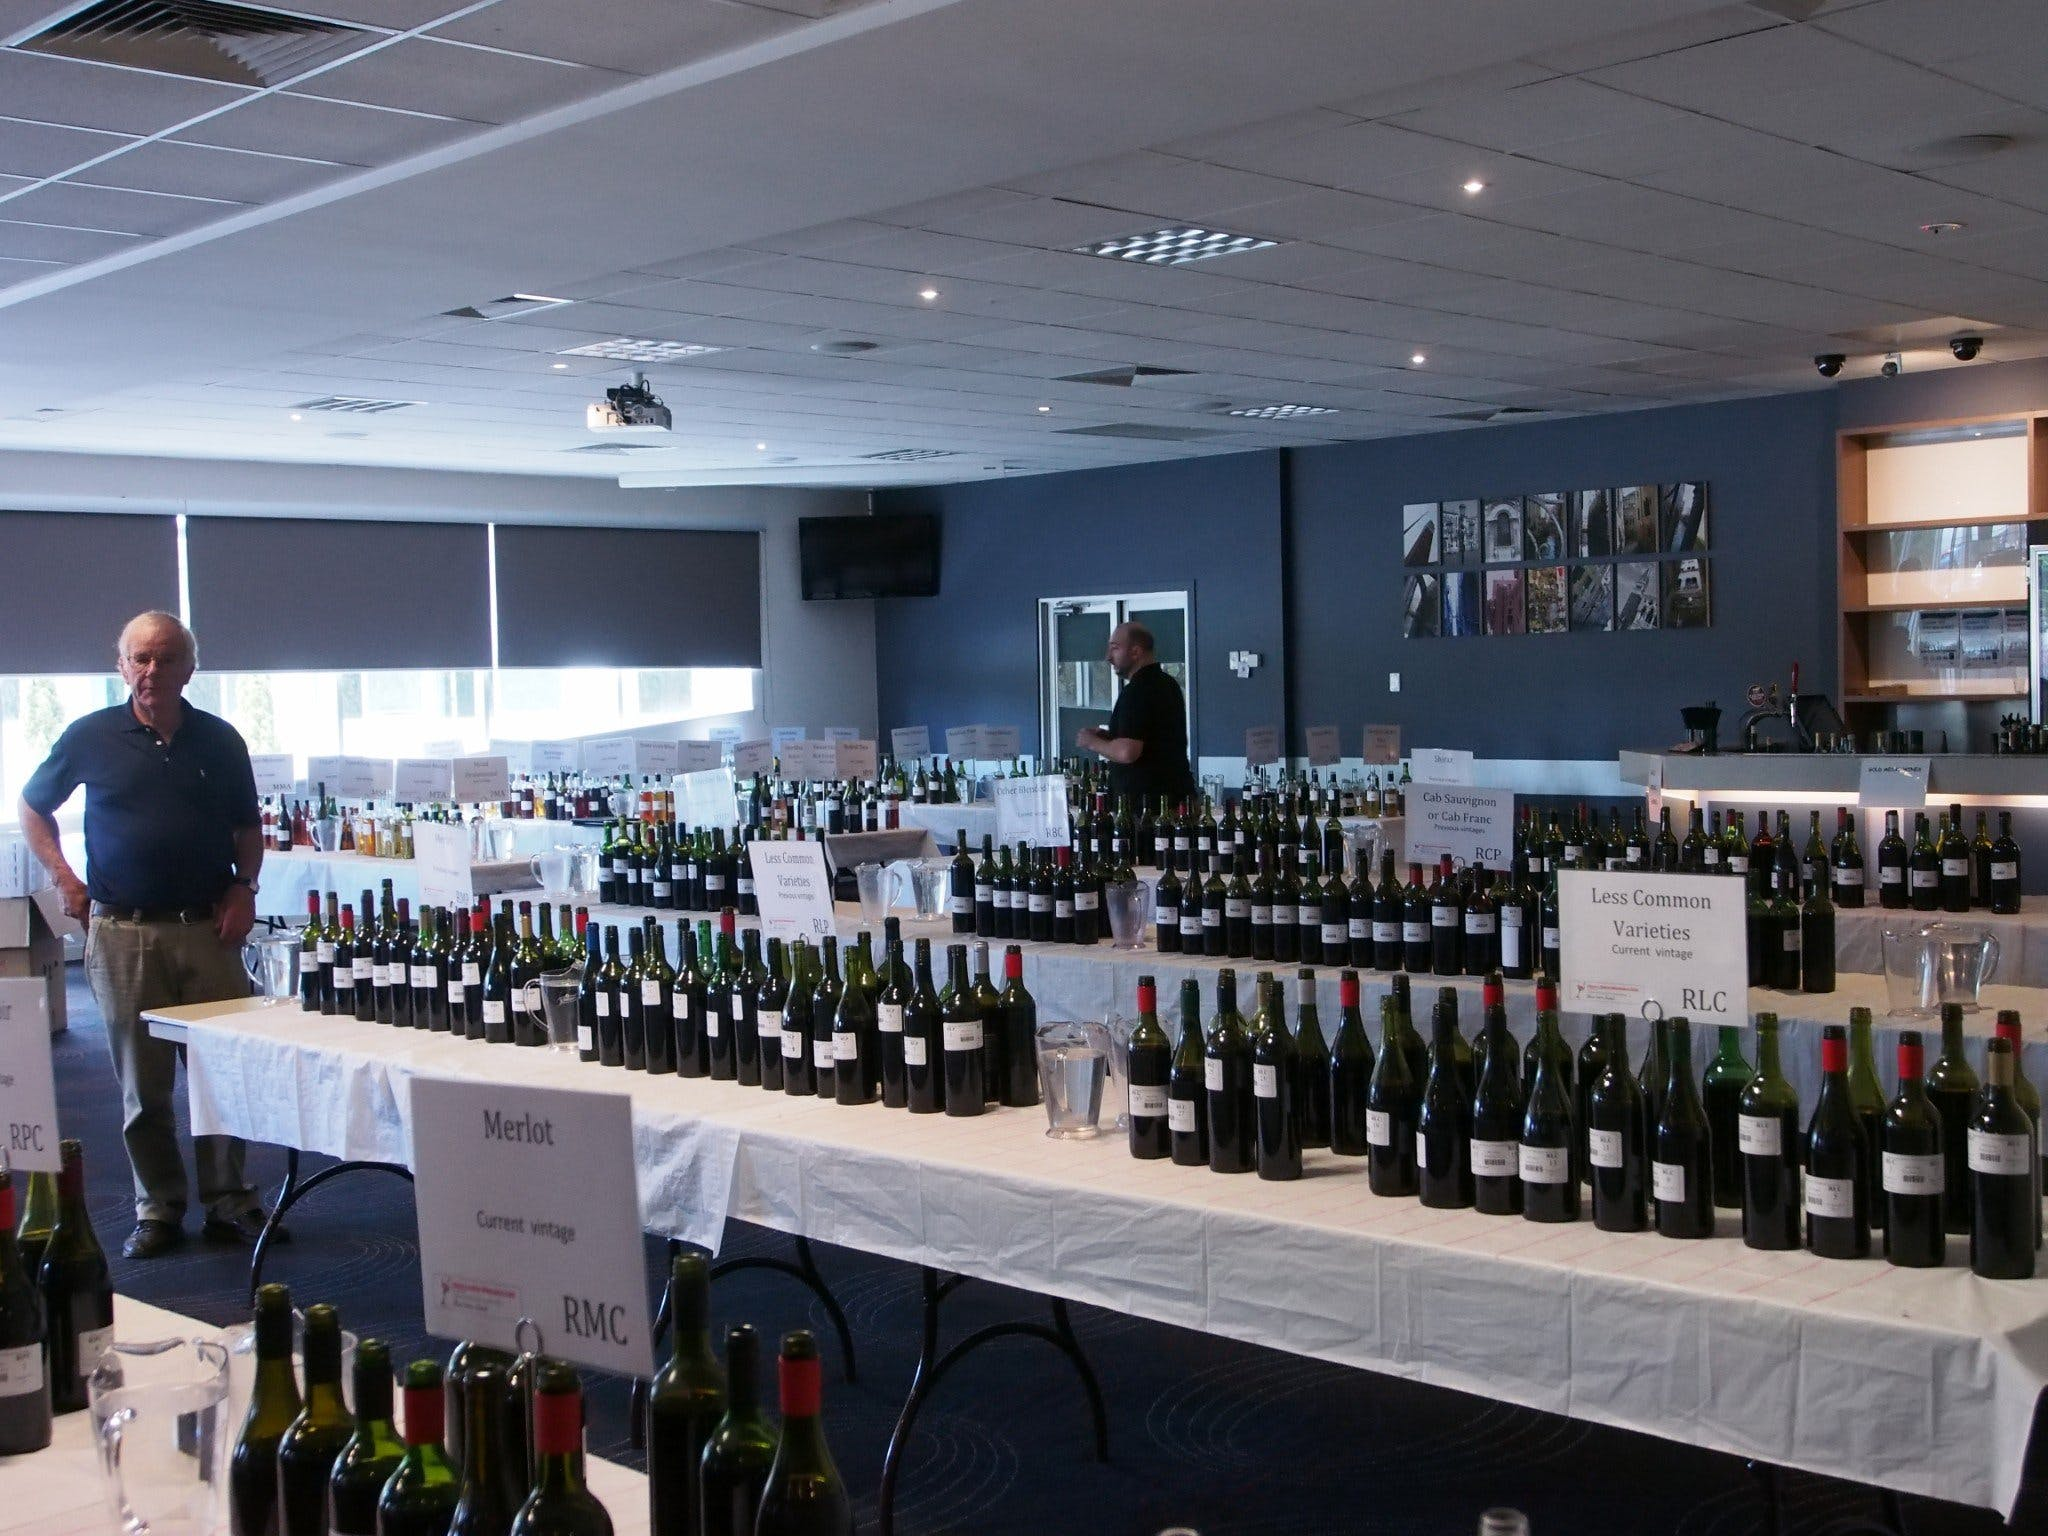 Eltham and District Wine Guild Annual Wine Show - 51st Annual Show - Casino Accommodation